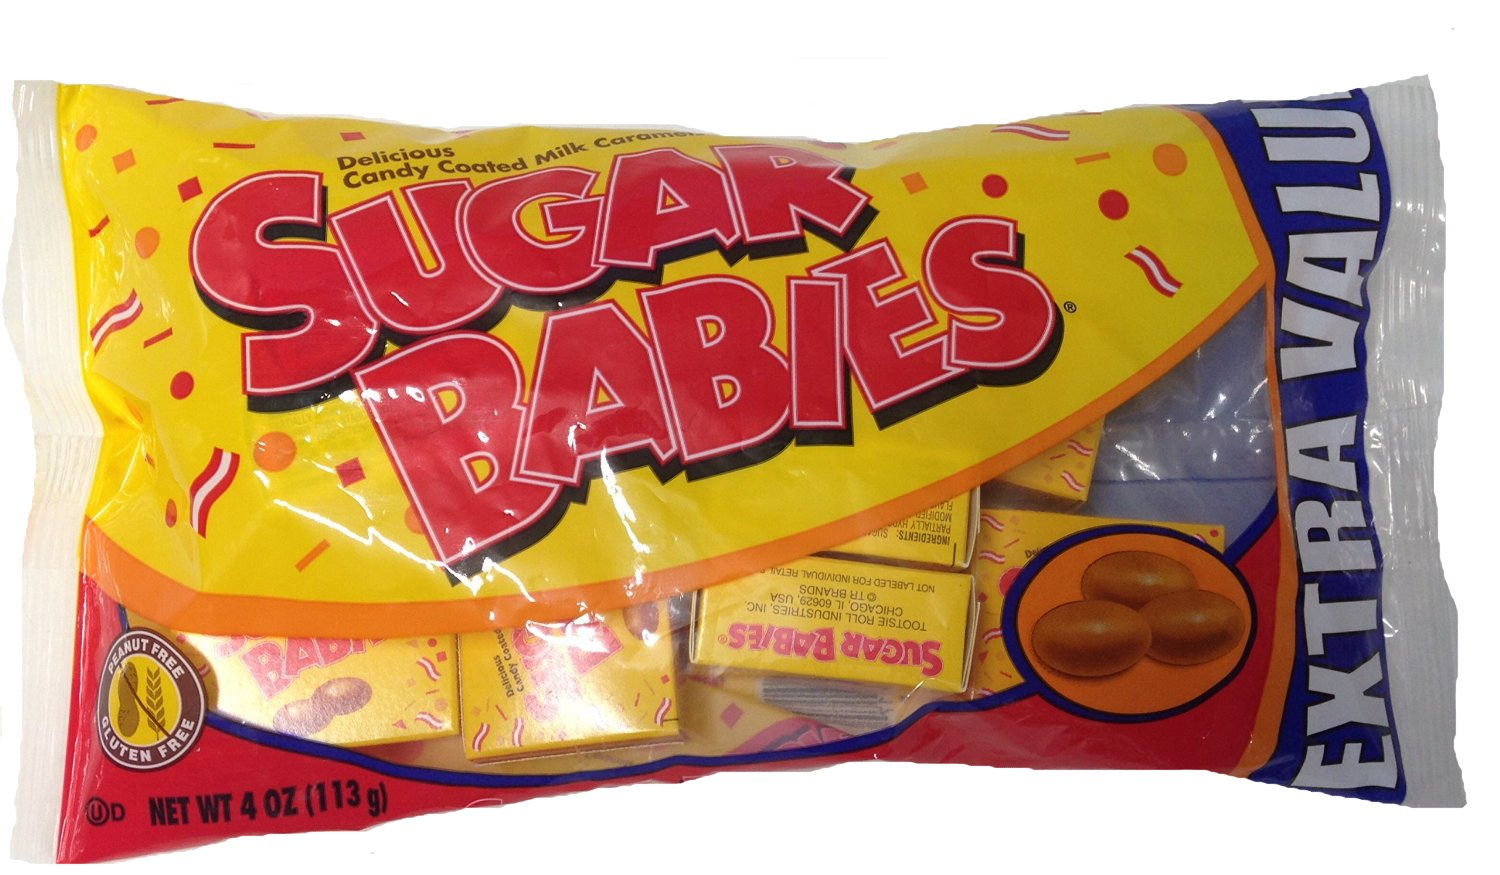 Sugar Babies Candy Coated Milk Caramels in Mini Boxes, 4oz Net Weight